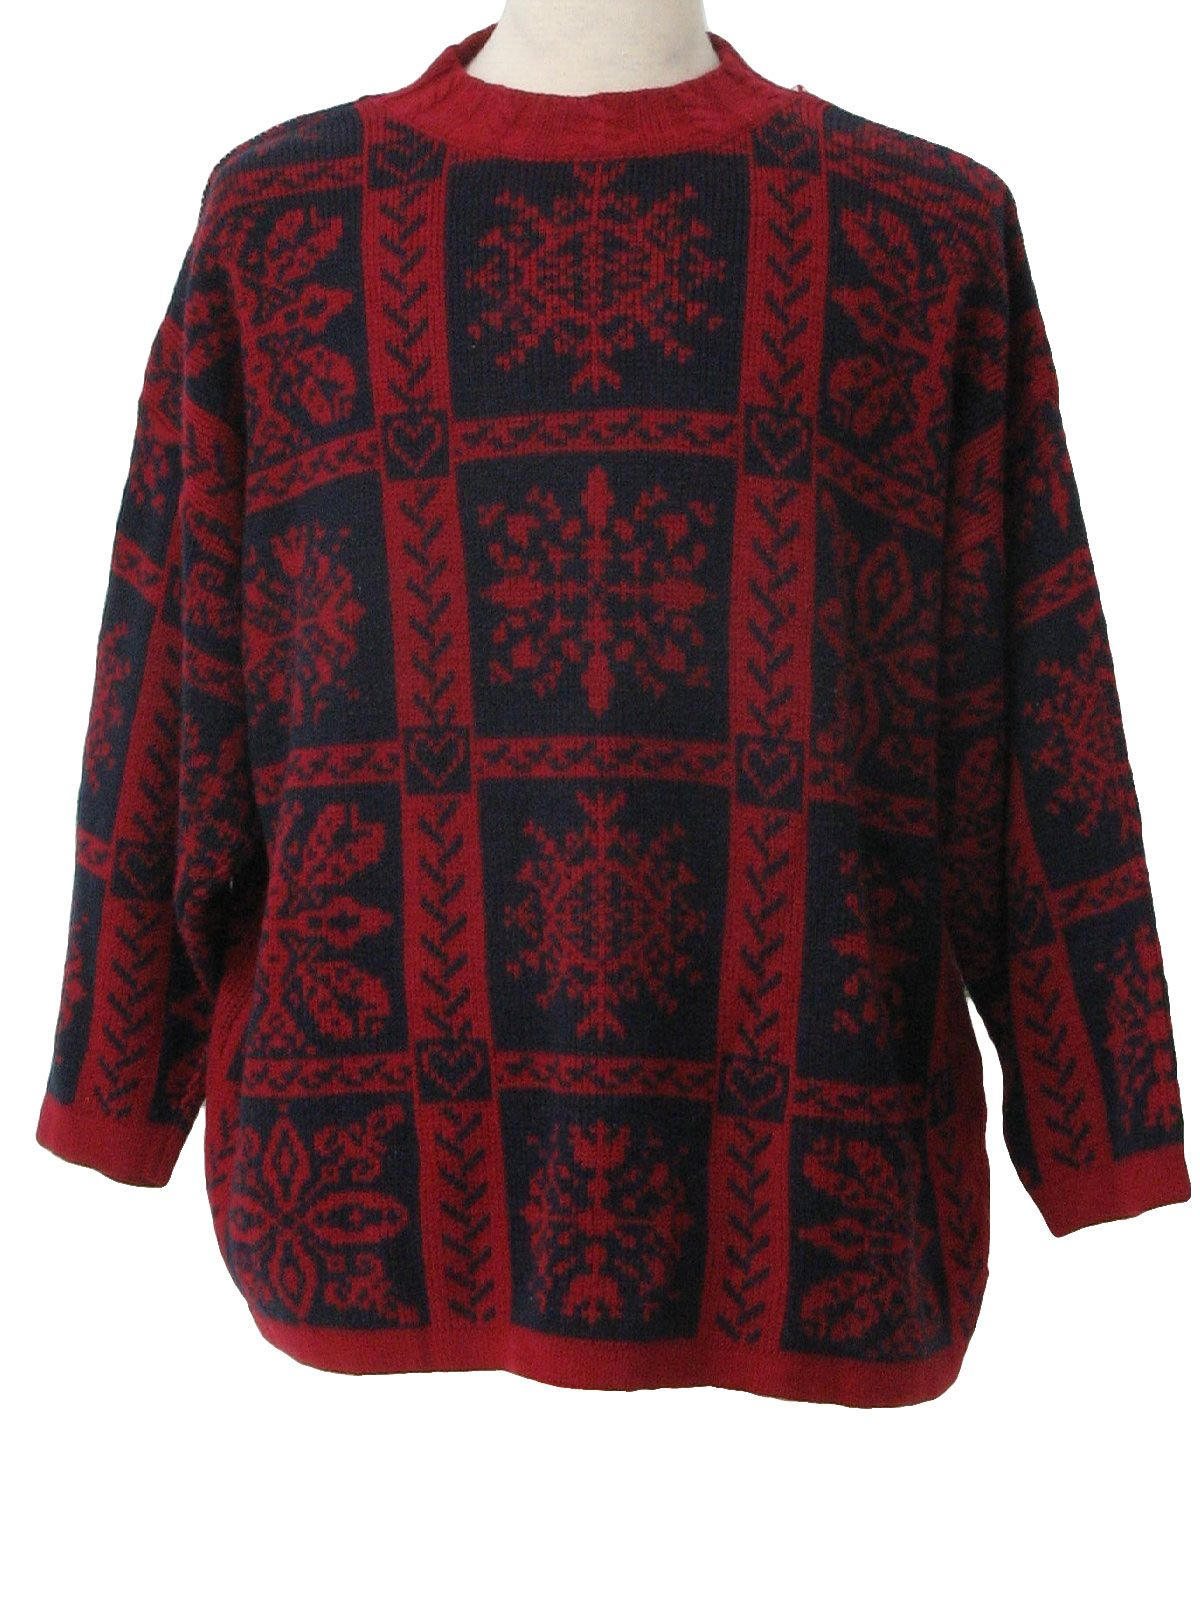 80s -Stefano- Womens blood red and navy blue snowflake design ...